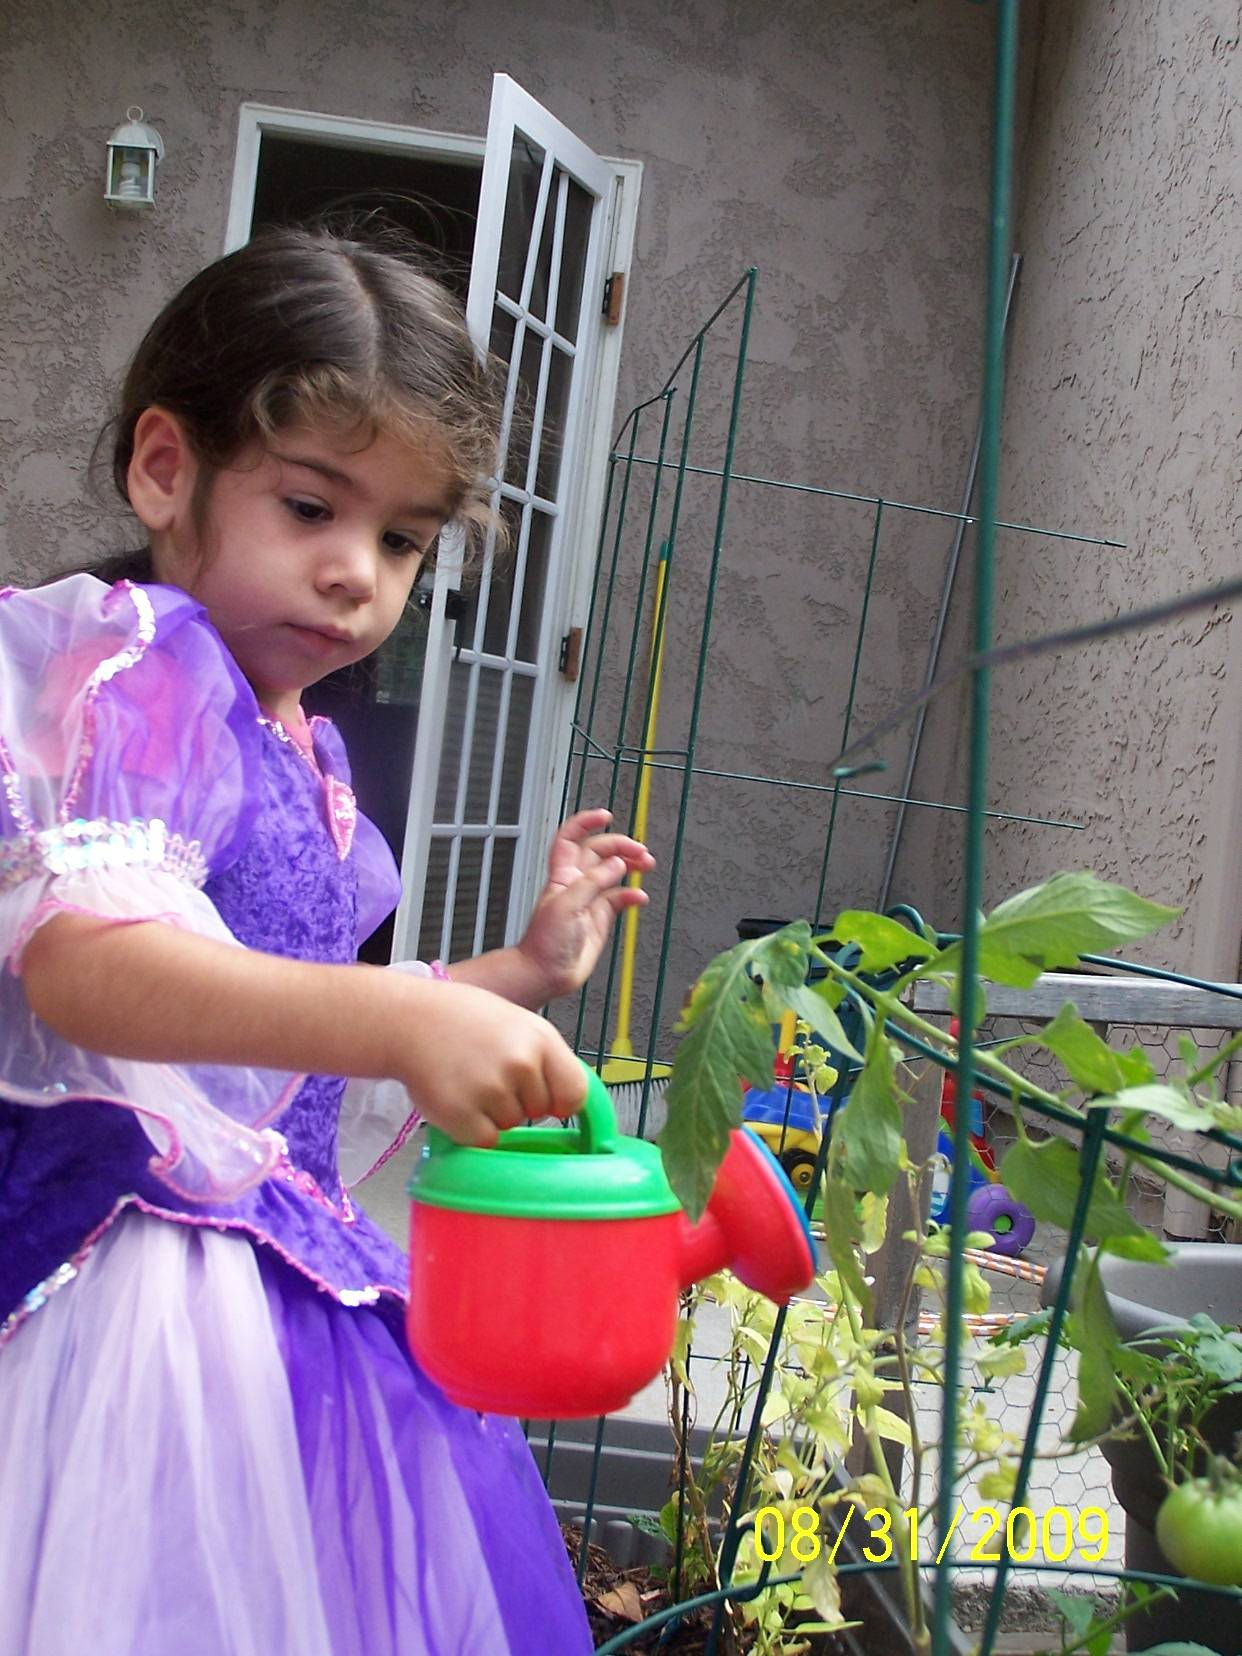 The Princess waters the garden